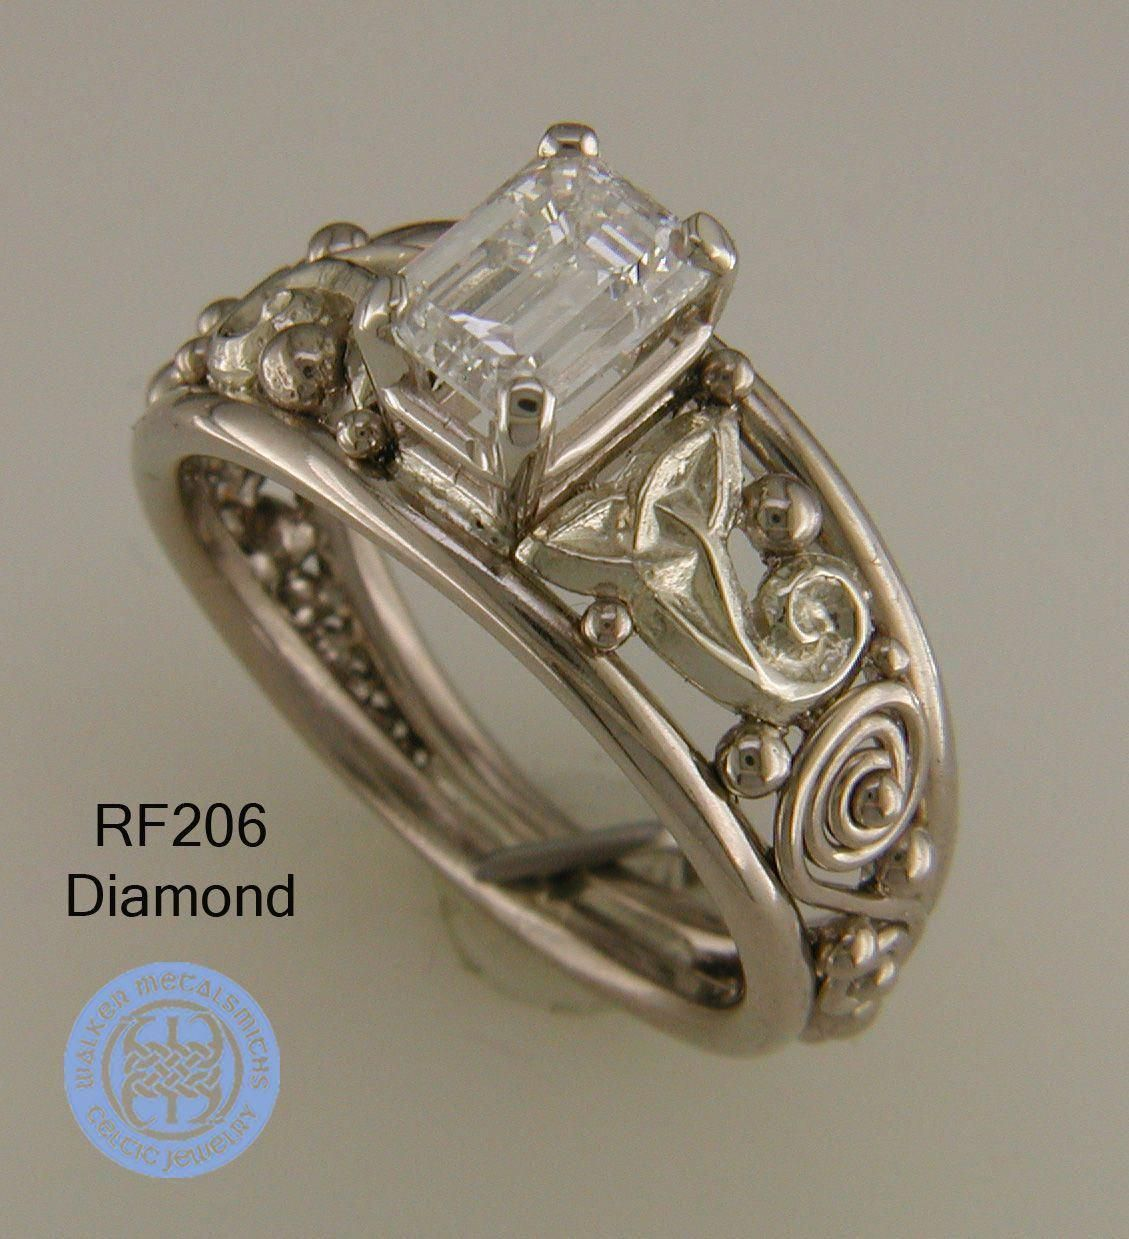 A beautiful and simple Celtic Irish engagement ring made